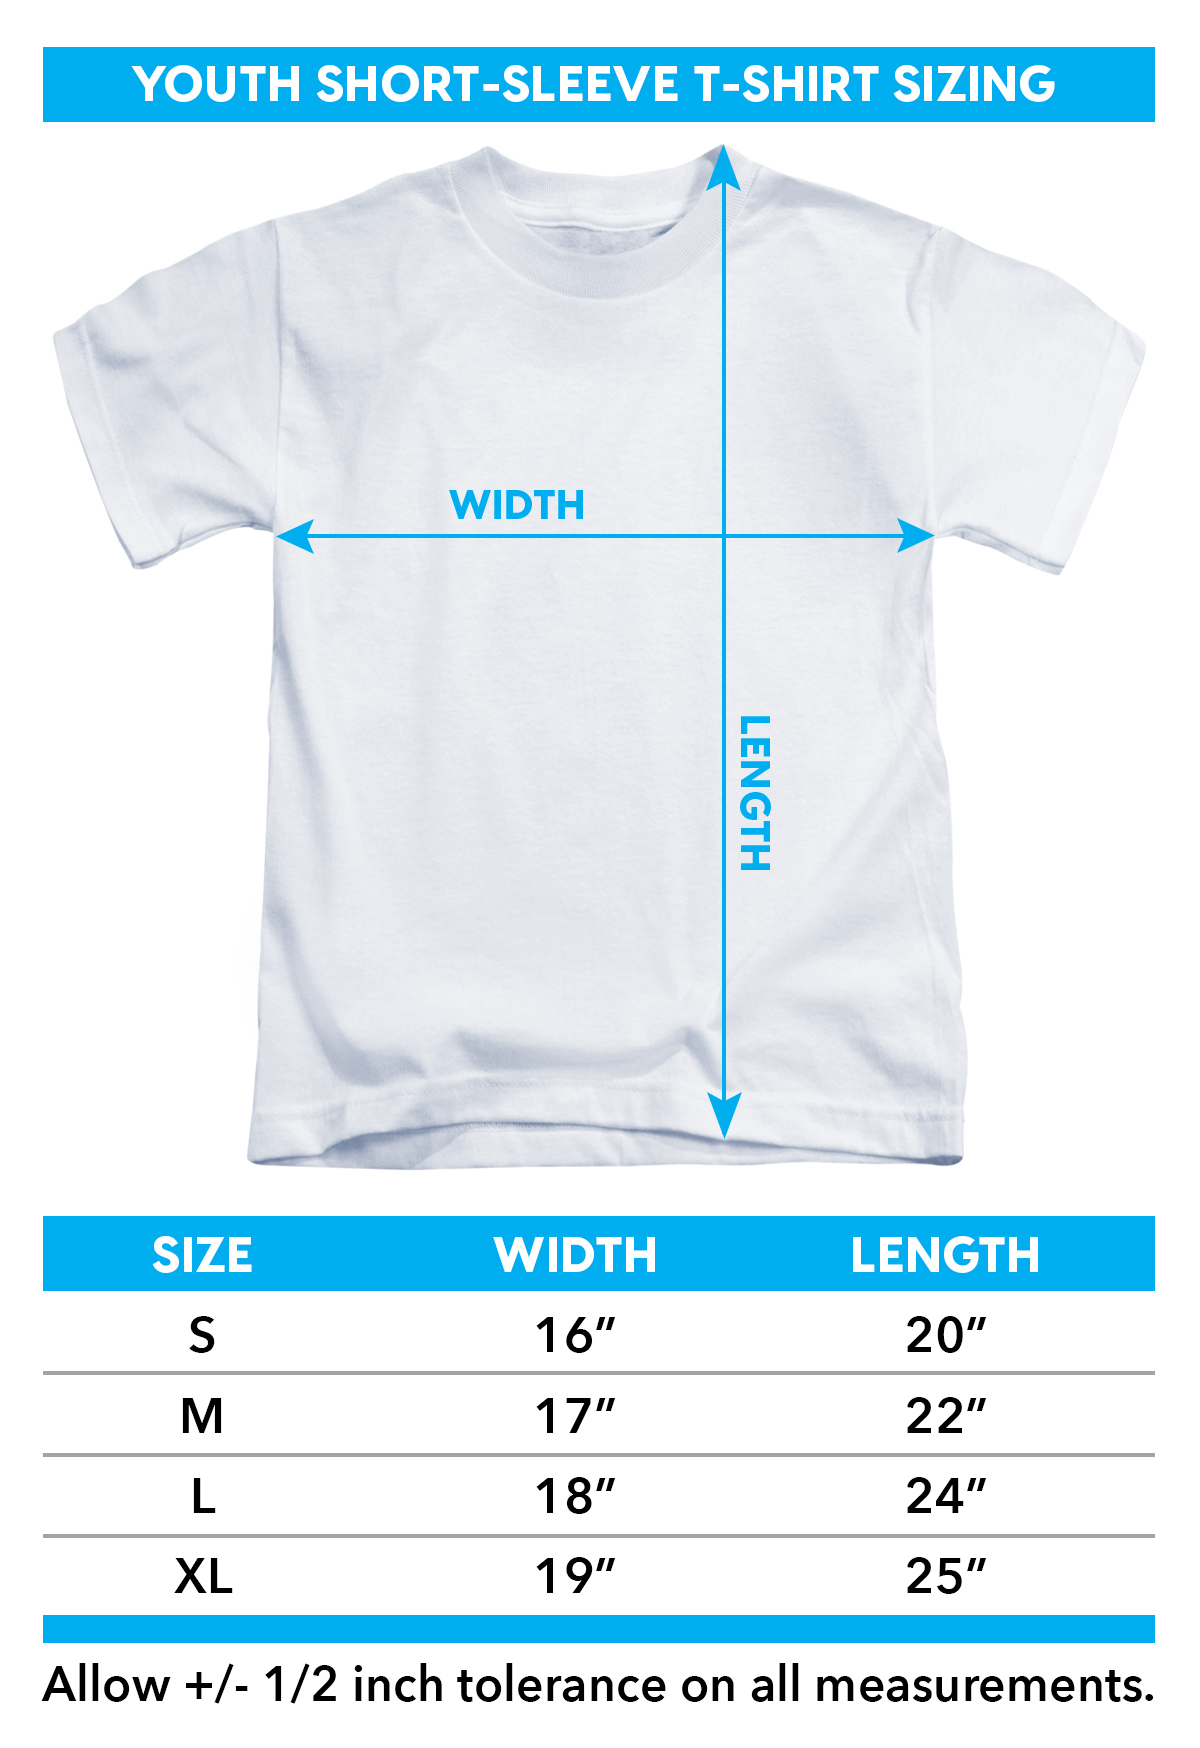 Sizing chart for John Lennon Youth T-Shirt - New York  TRV-LEN100-YT